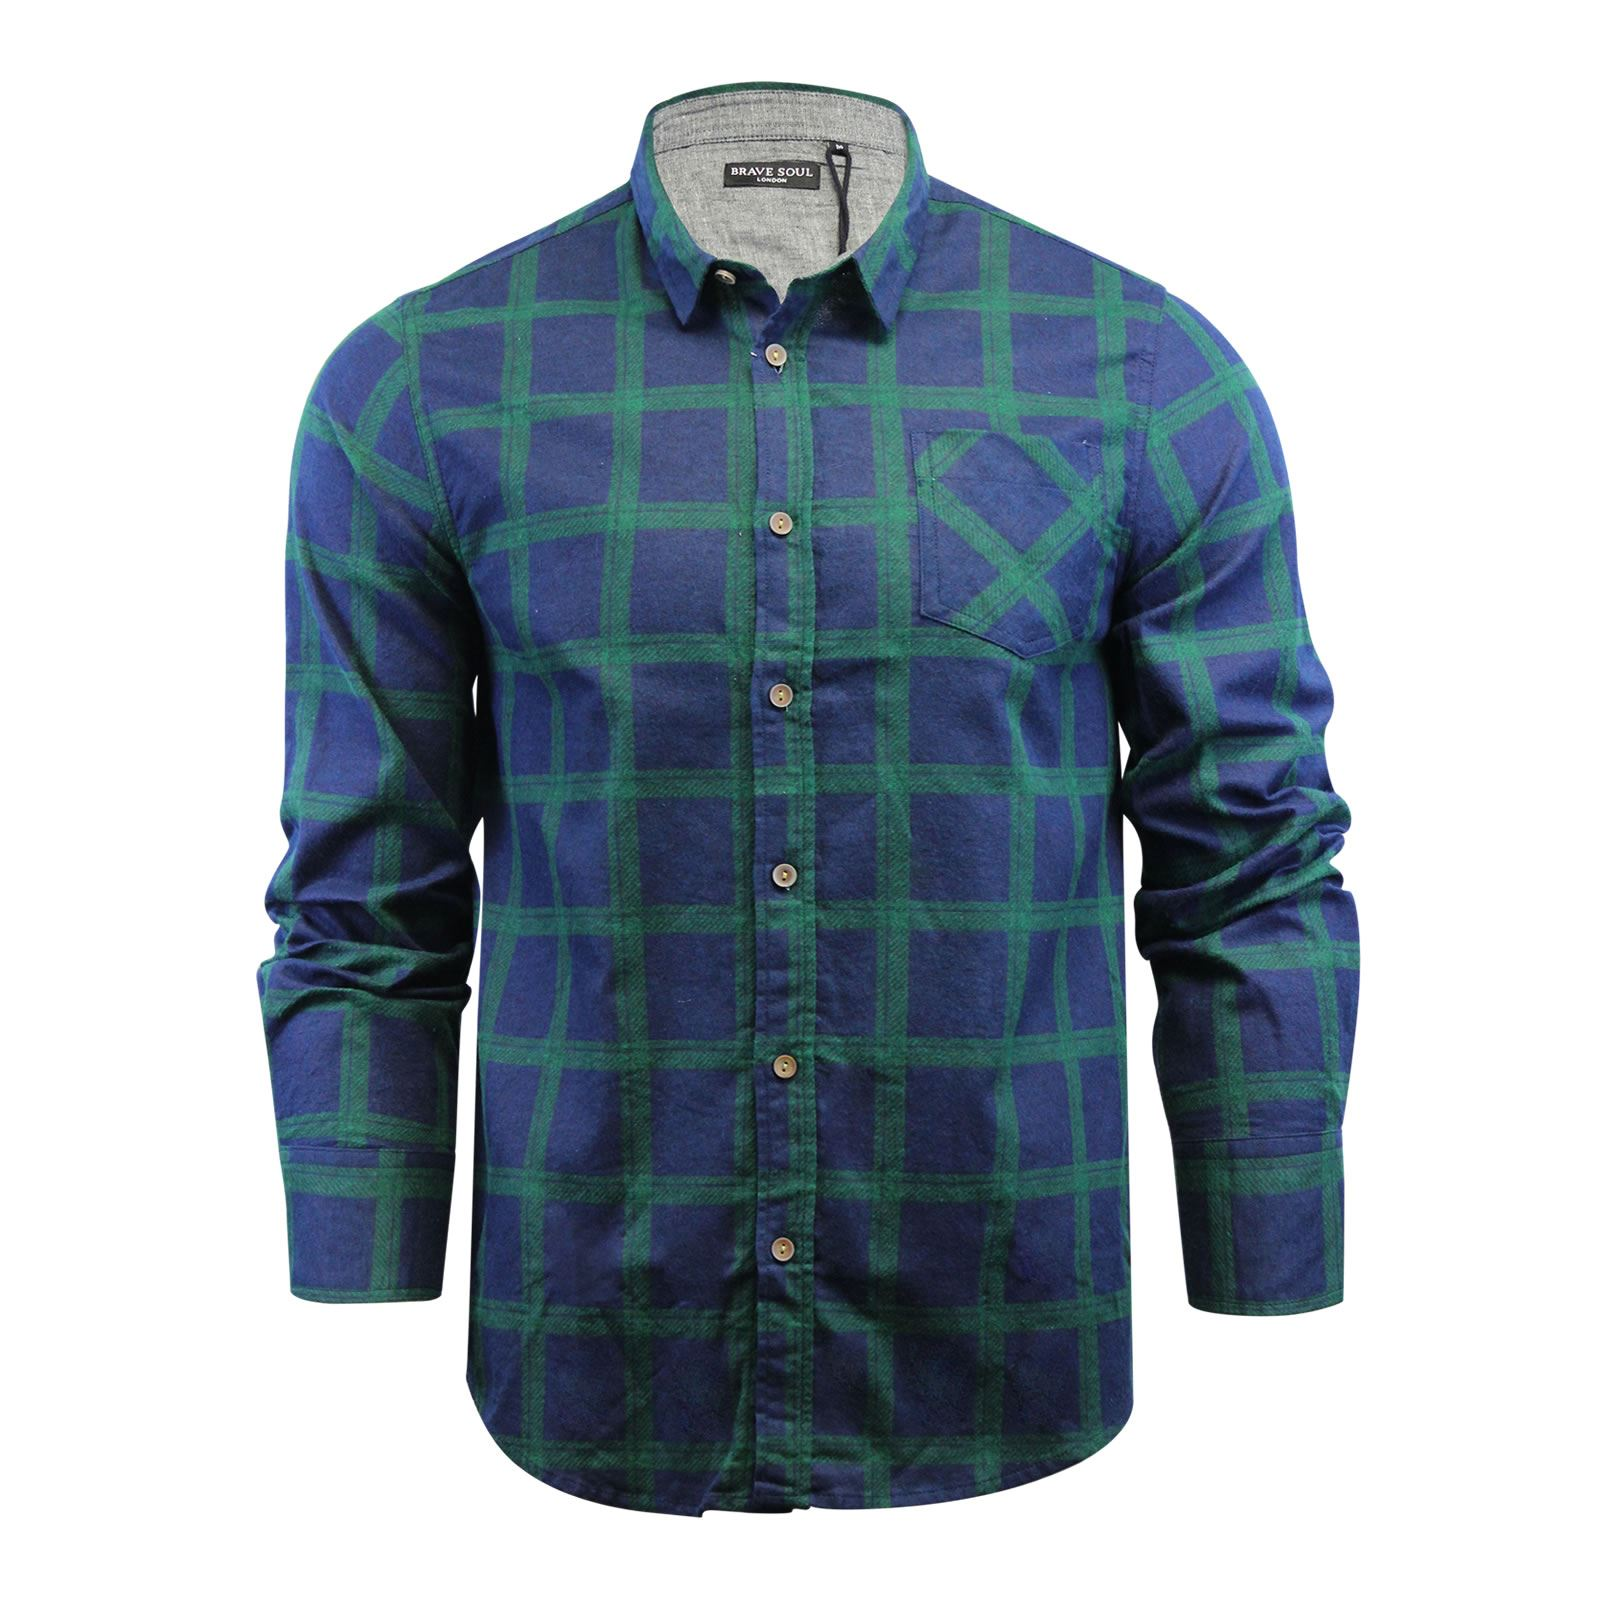 Brave-Soul-Mens-Check-Shirt-Flannel-Brushed-Cotton-Long-Sleeve-Casual-Top thumbnail 49